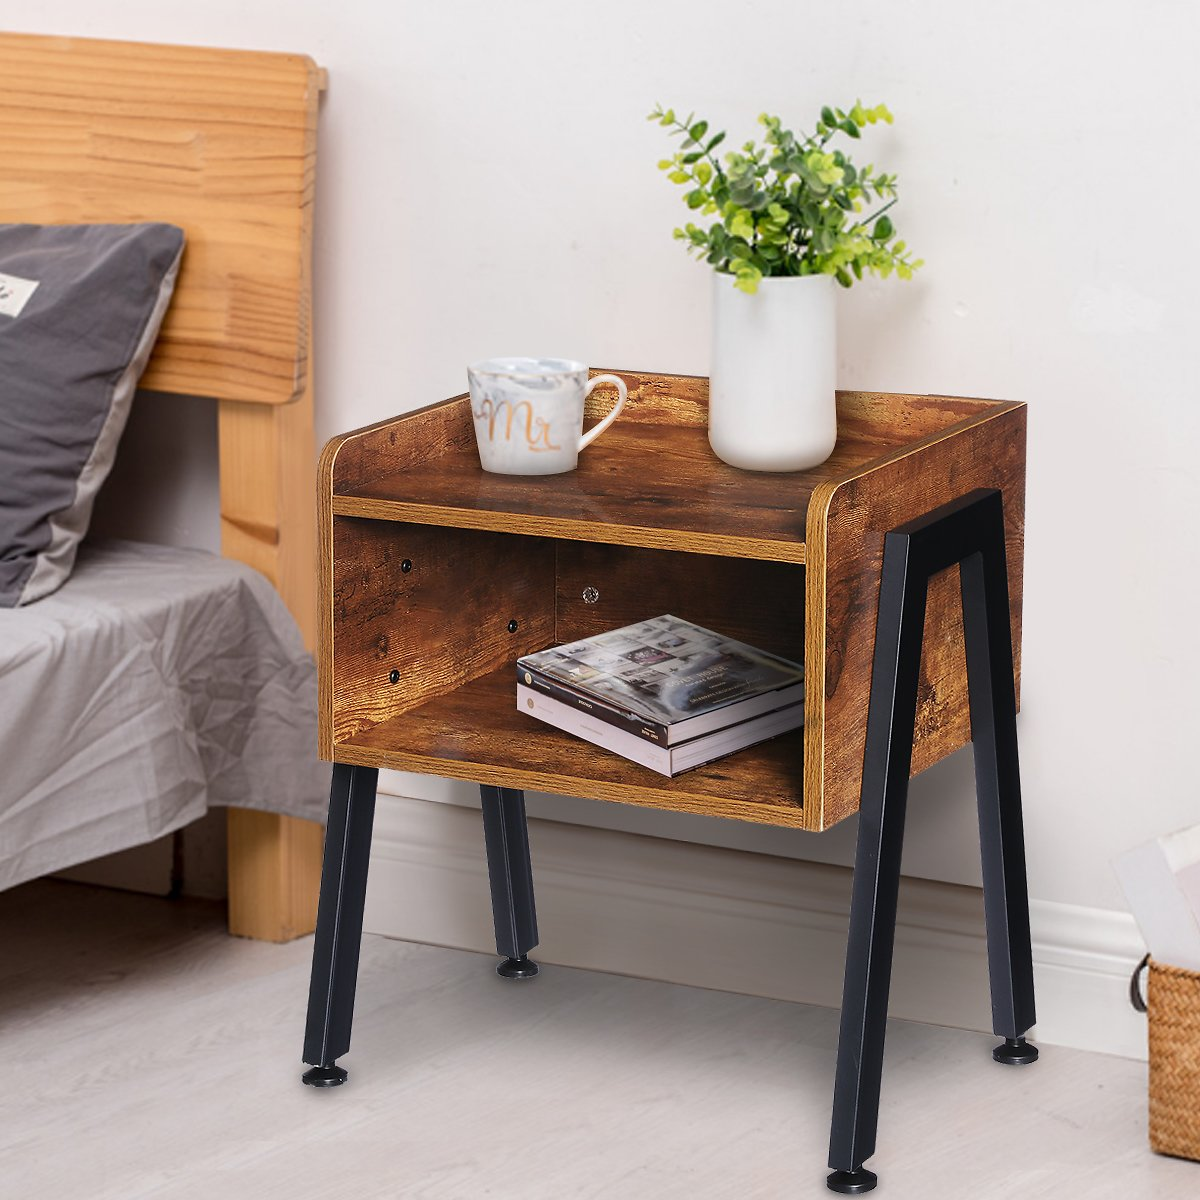 Industrial Nightstand End Table Stackable Side Table Night Stands for Bedrooms Cabinet for Storage Sofa Bed Side Table for Small